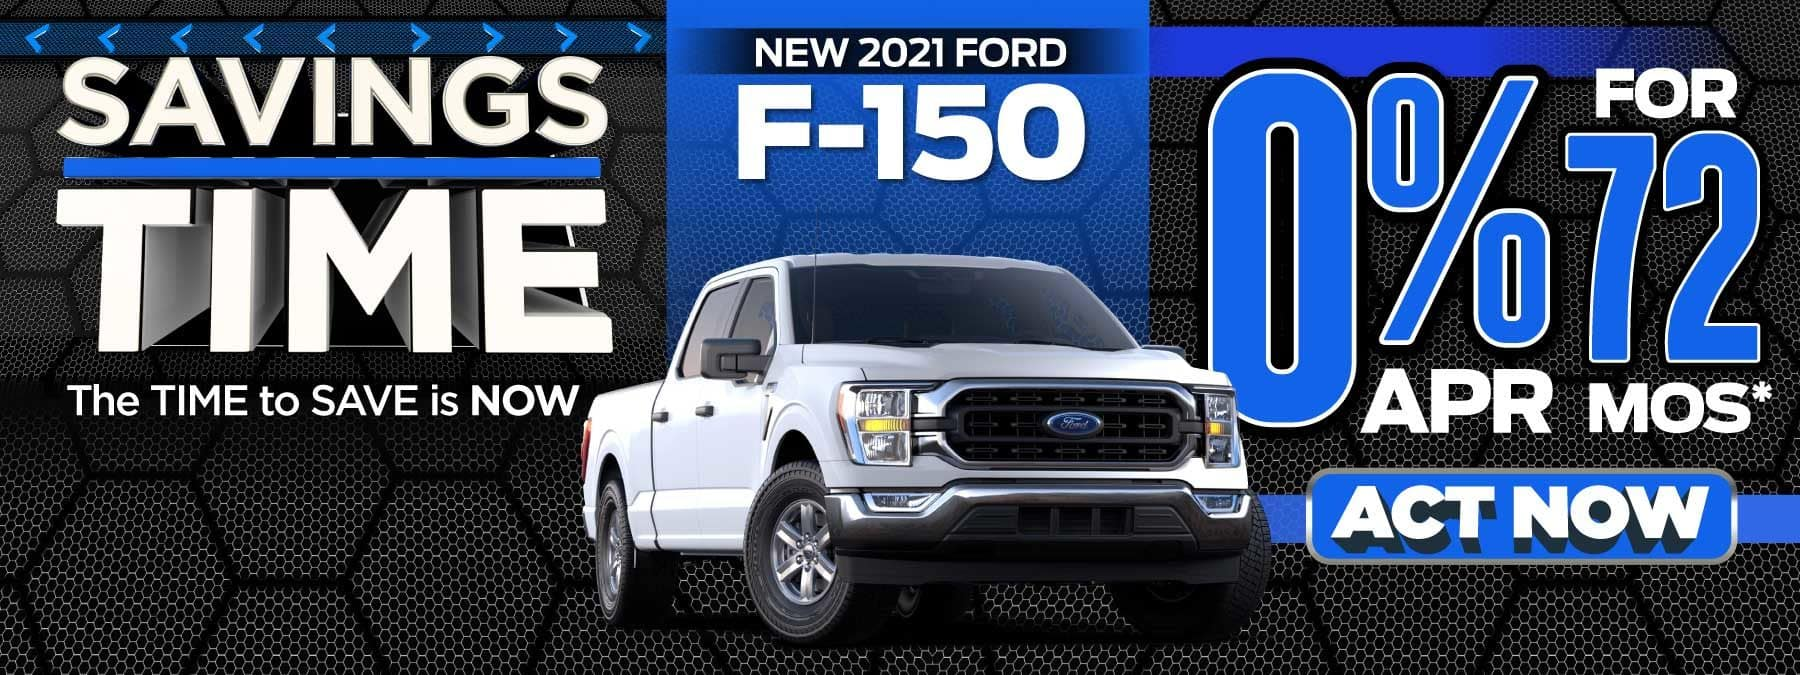 New 2021 Ford F-150 - 0% APR for 72 months - Act Now